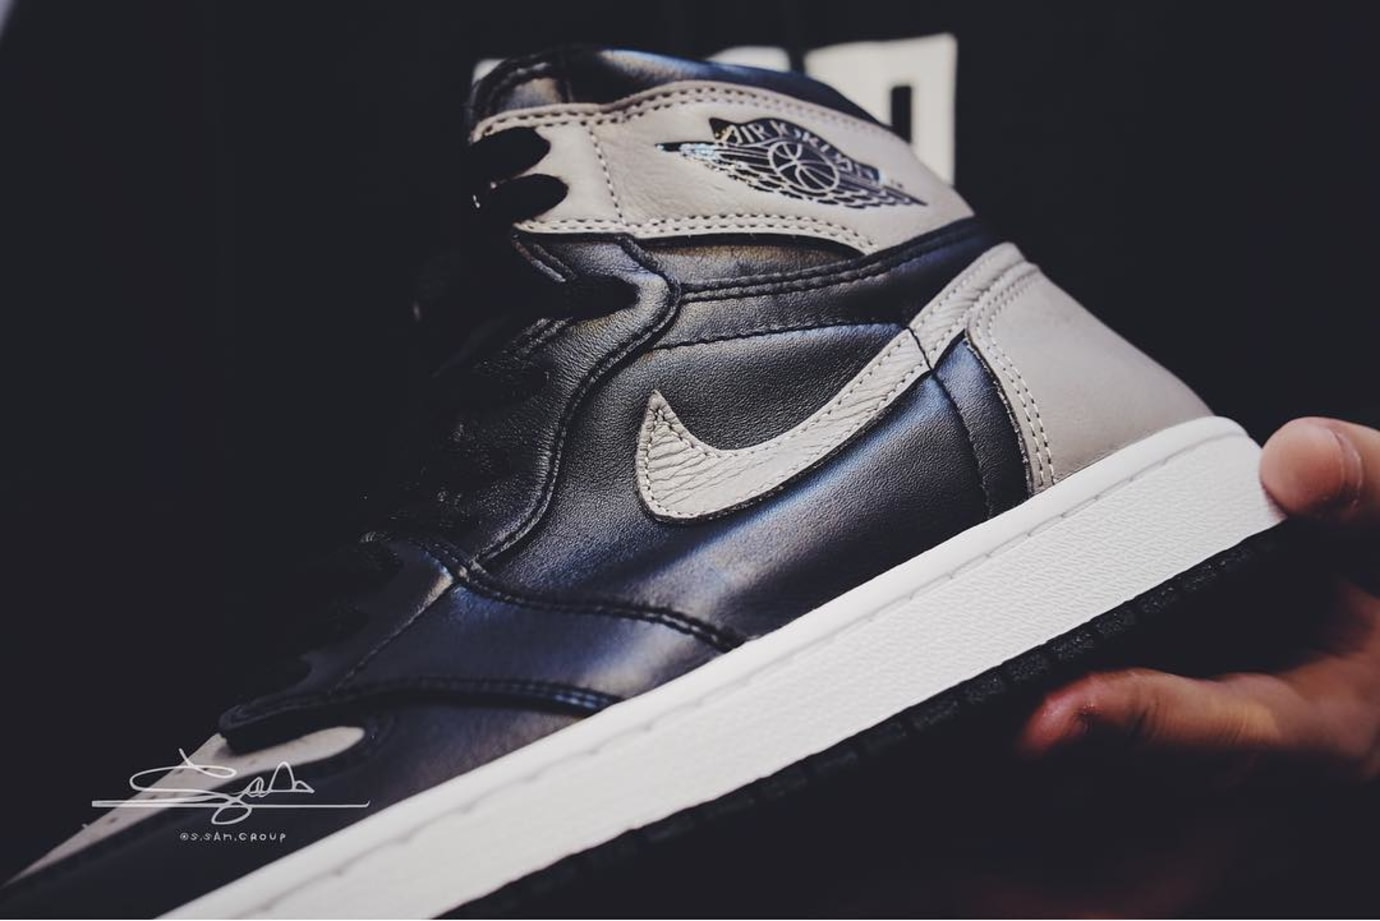 Air Jordan 1 I High OG Shadow 2018 Release Date 555088-013 Midsole